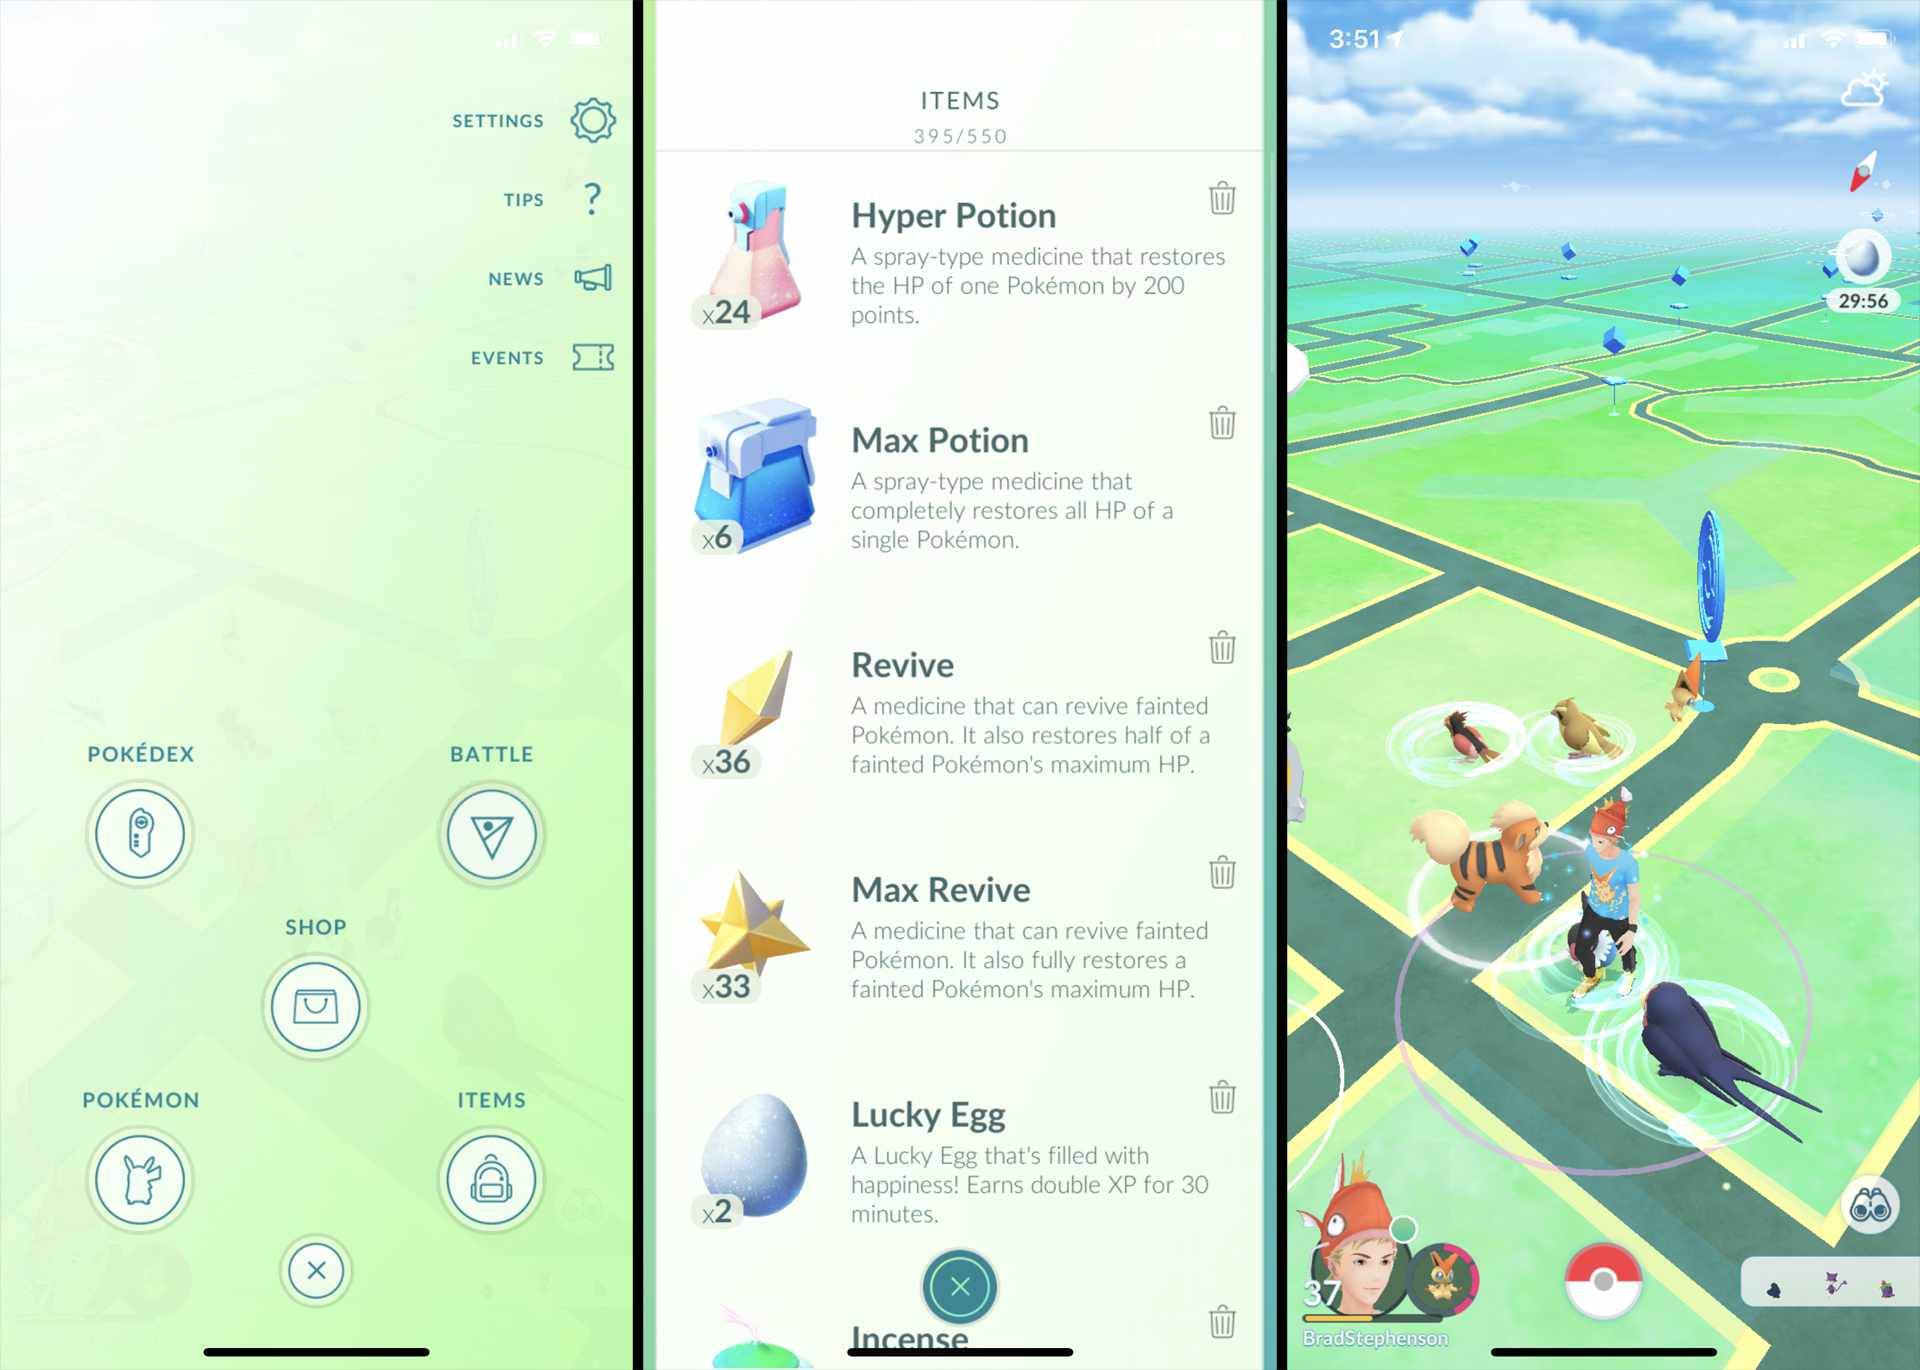 Using a Lucky Egg in Pokemon GO to get double XP.